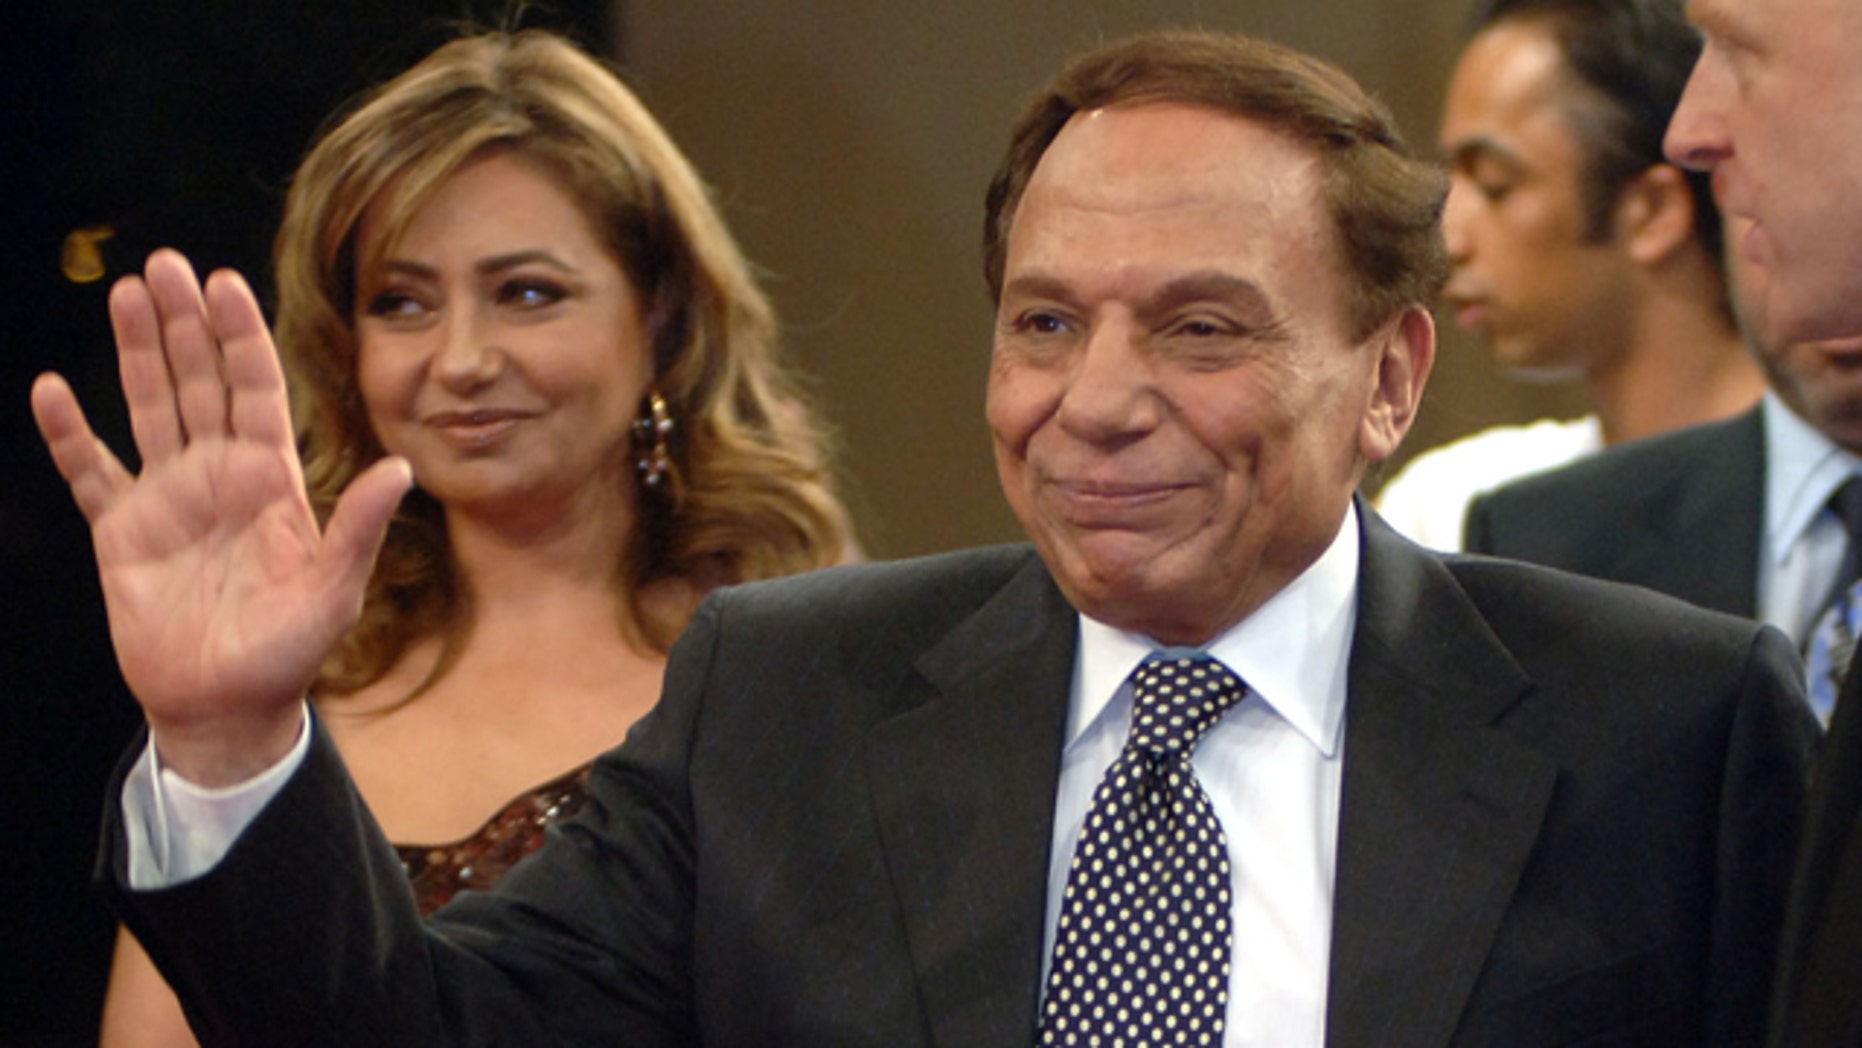 Nov. 11, 2005: FILE - In this file photo, Egyptian film actor and comedian Adel Imam, right, walks with Egyptian actress Laila Elwi, left, during the Second Dubai Interational Film Festival red carpet reception, in Dubai, United Arab Emirates.